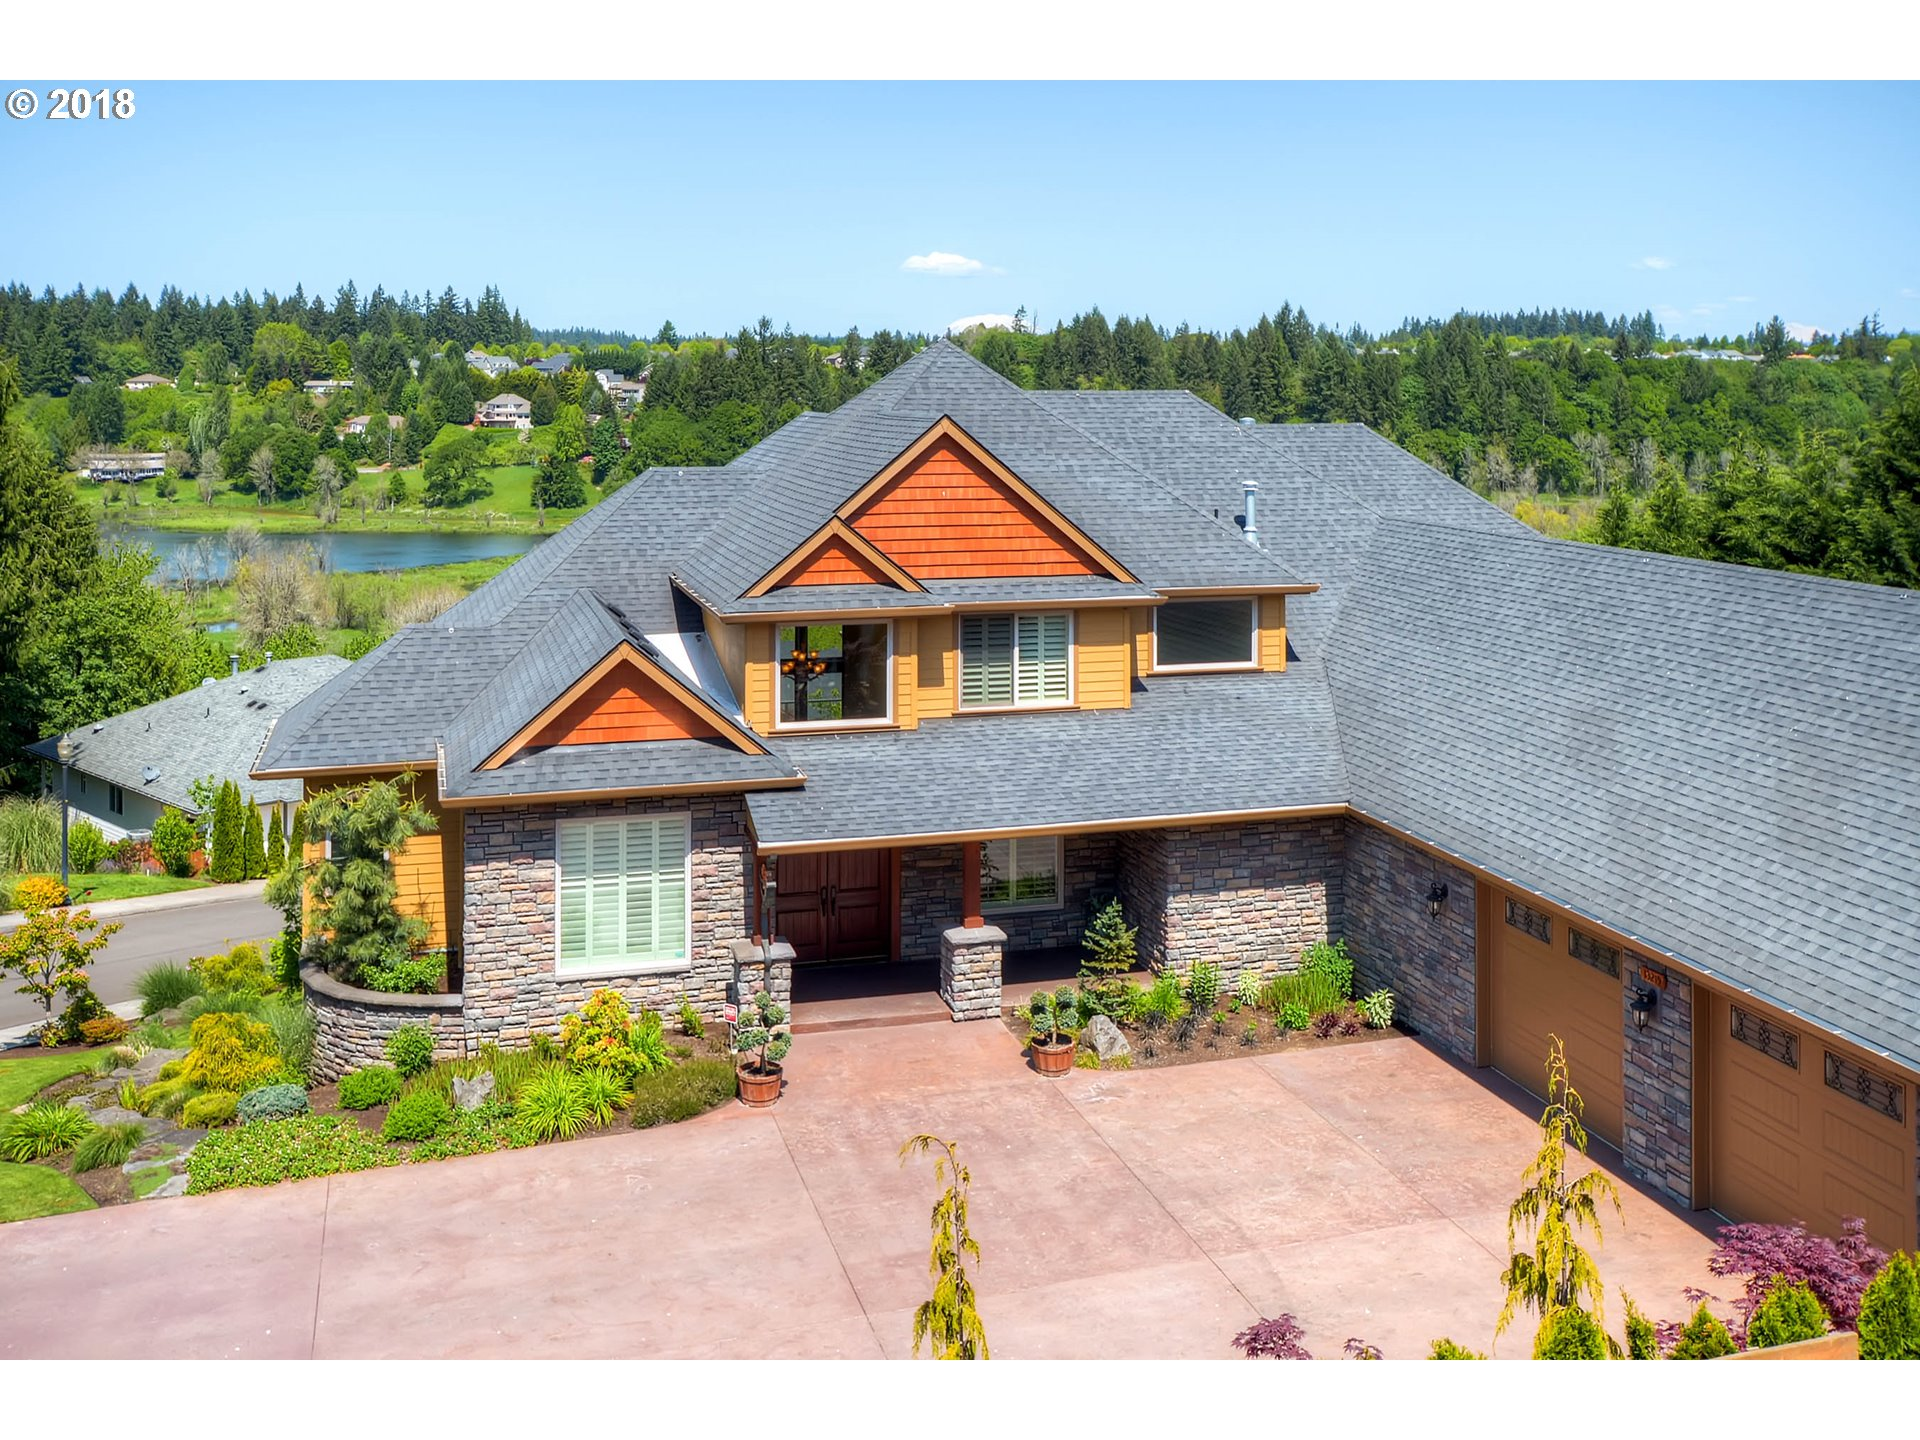 Better than NEW! Stunning 6,000+ sq ft home overlooking Salmon Creek. Perfect for generational living. Approx 3,700 feet on upper 2 floors AND almost 1800 feet downstairs including full kitchen. Granite, Travertine, hardwood, freshly painted exterior, 2 huge decks overlooking creek, 650 sq ft of storage. Park all your toys in the over 1850 sq ft garage! 6+ cars will easily fit. 2 heating systems, recirculating water plus more!